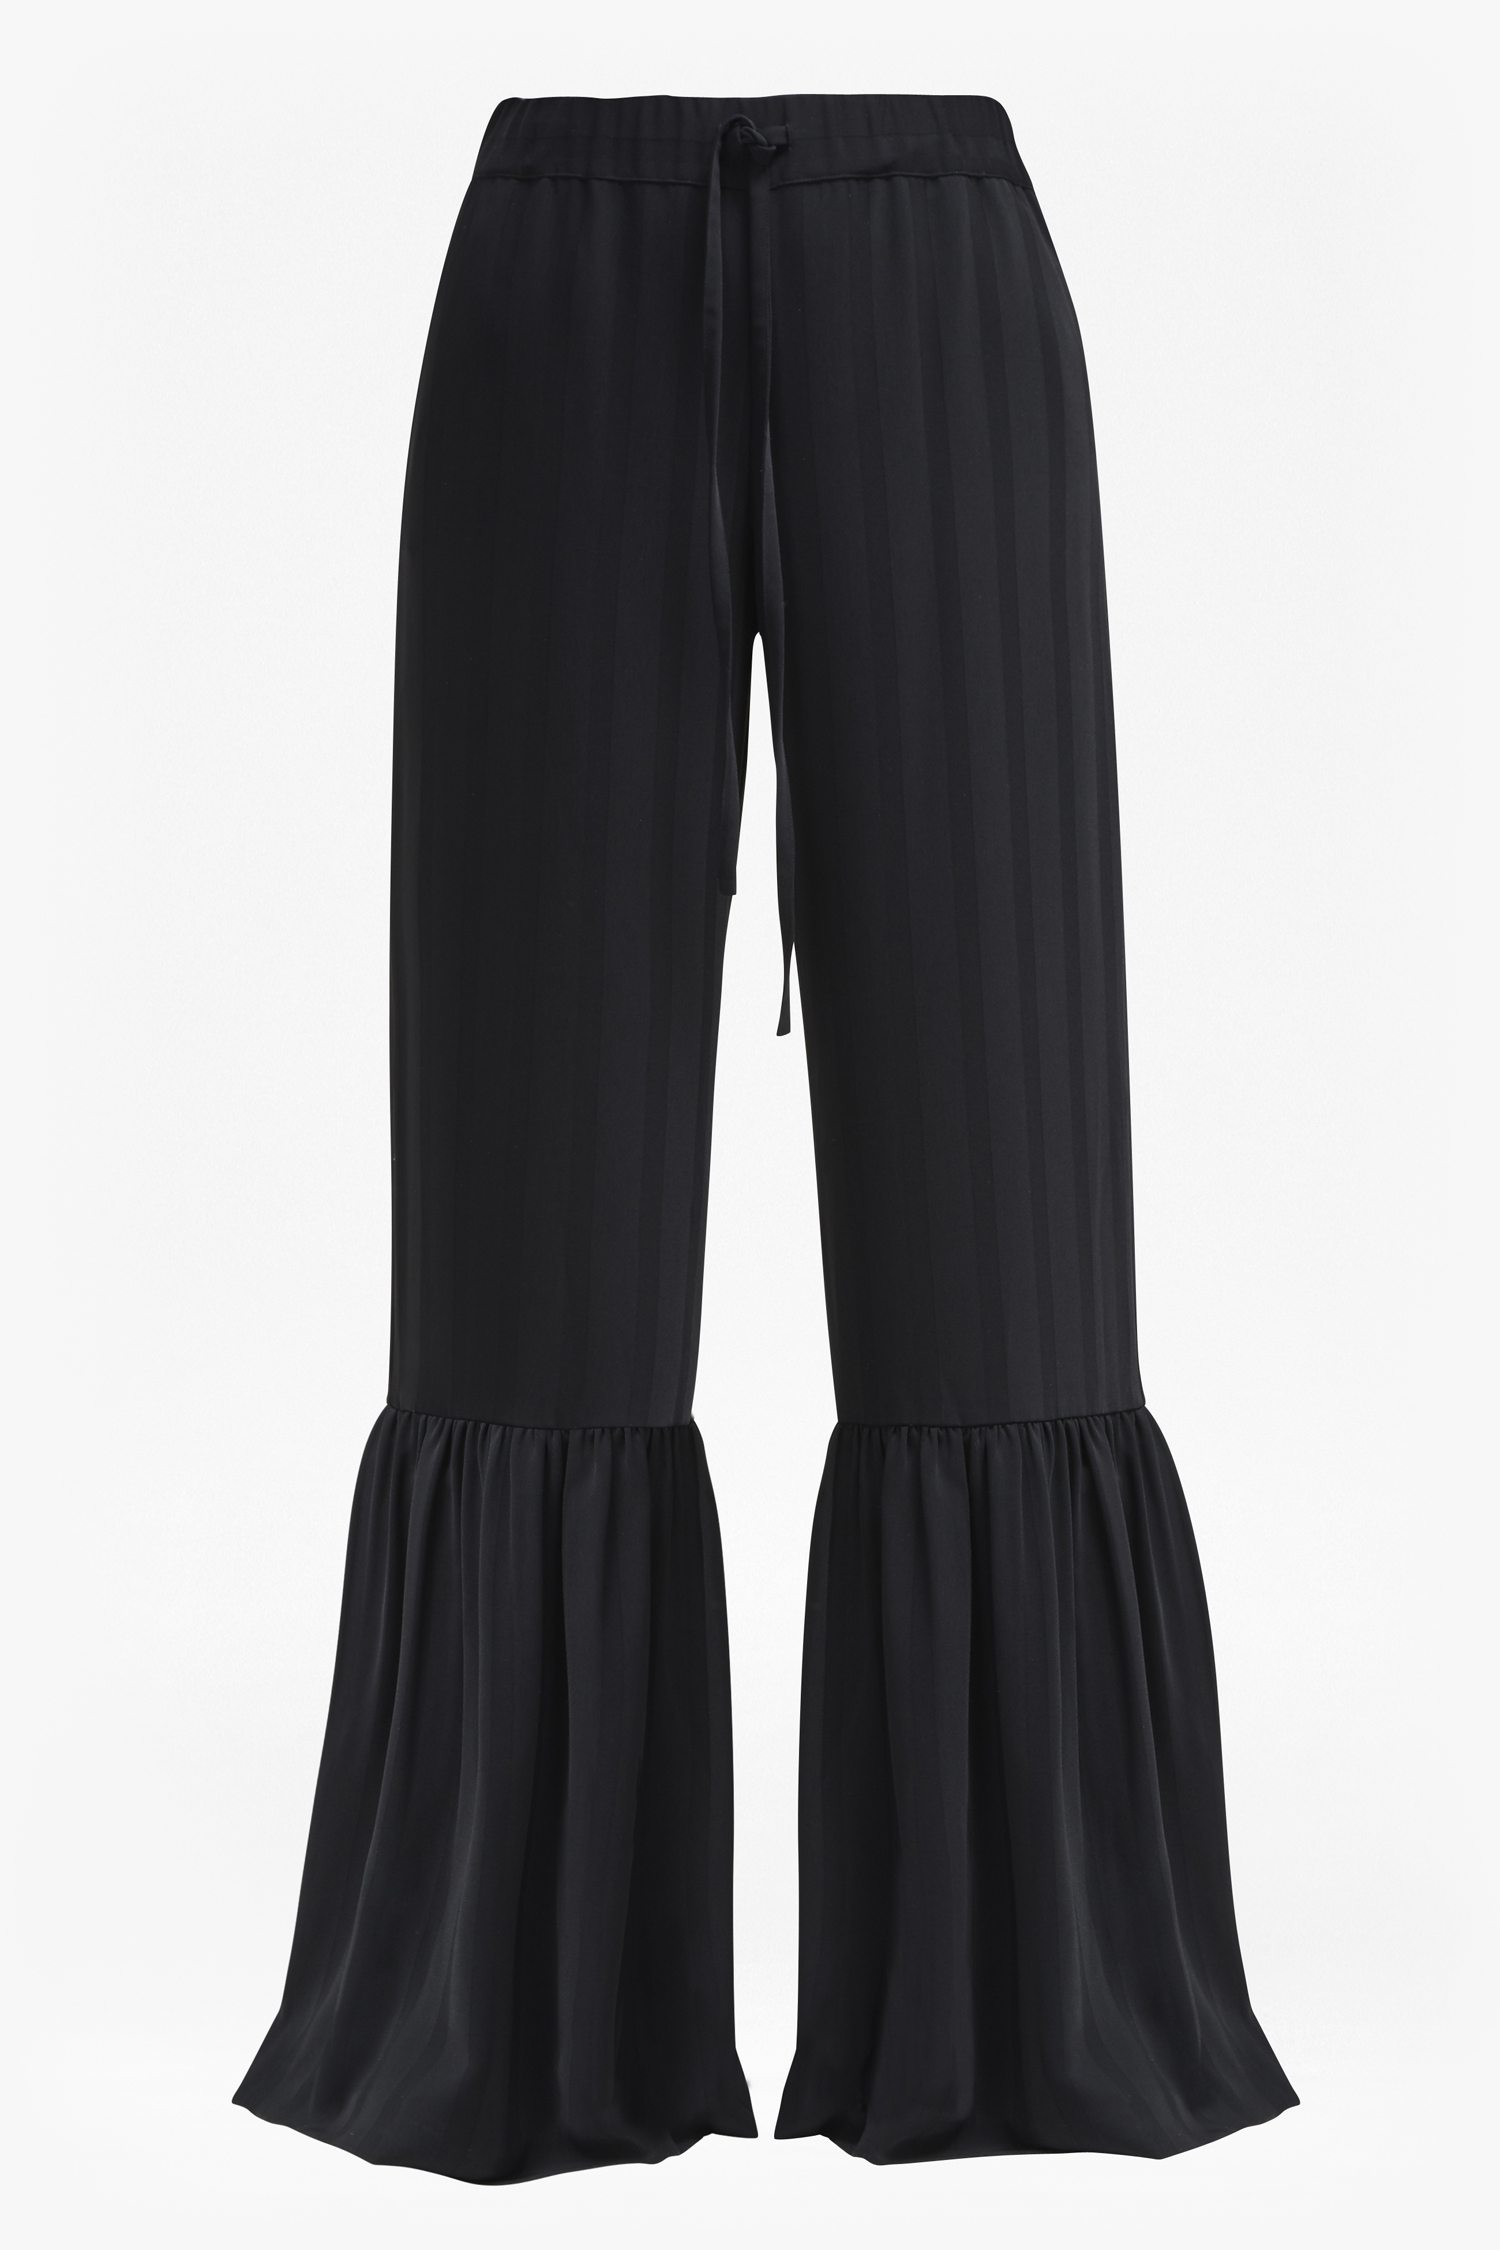 Aleida Suiting Bell Bottom Trousers - black